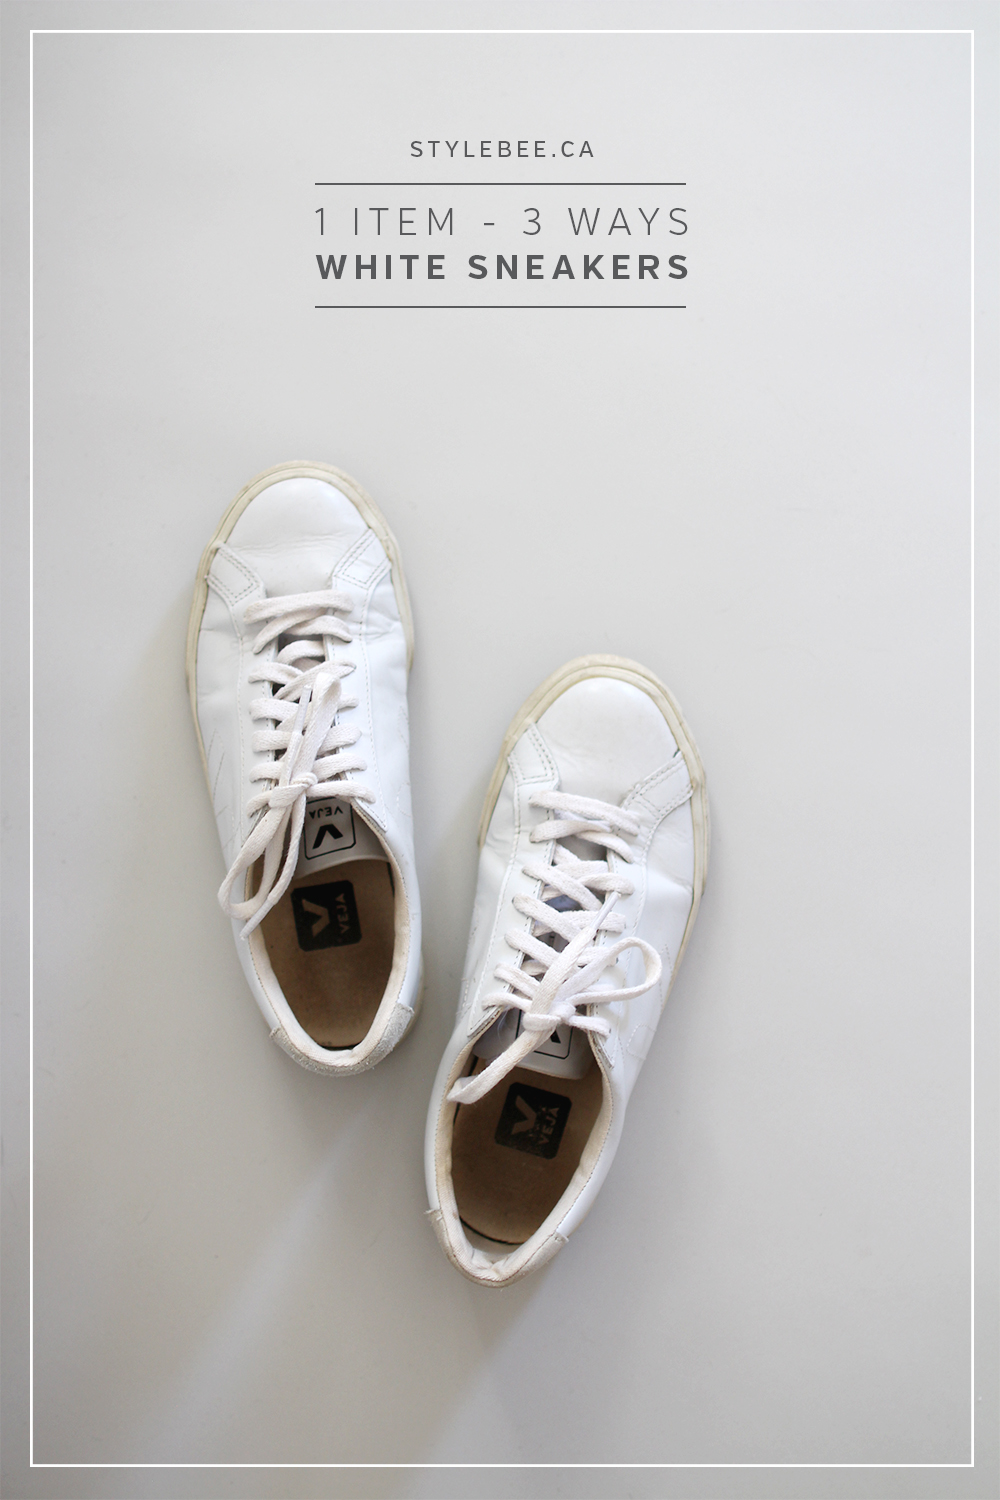 Style Bee - 1 Item - 3 Ways - White Sneakers